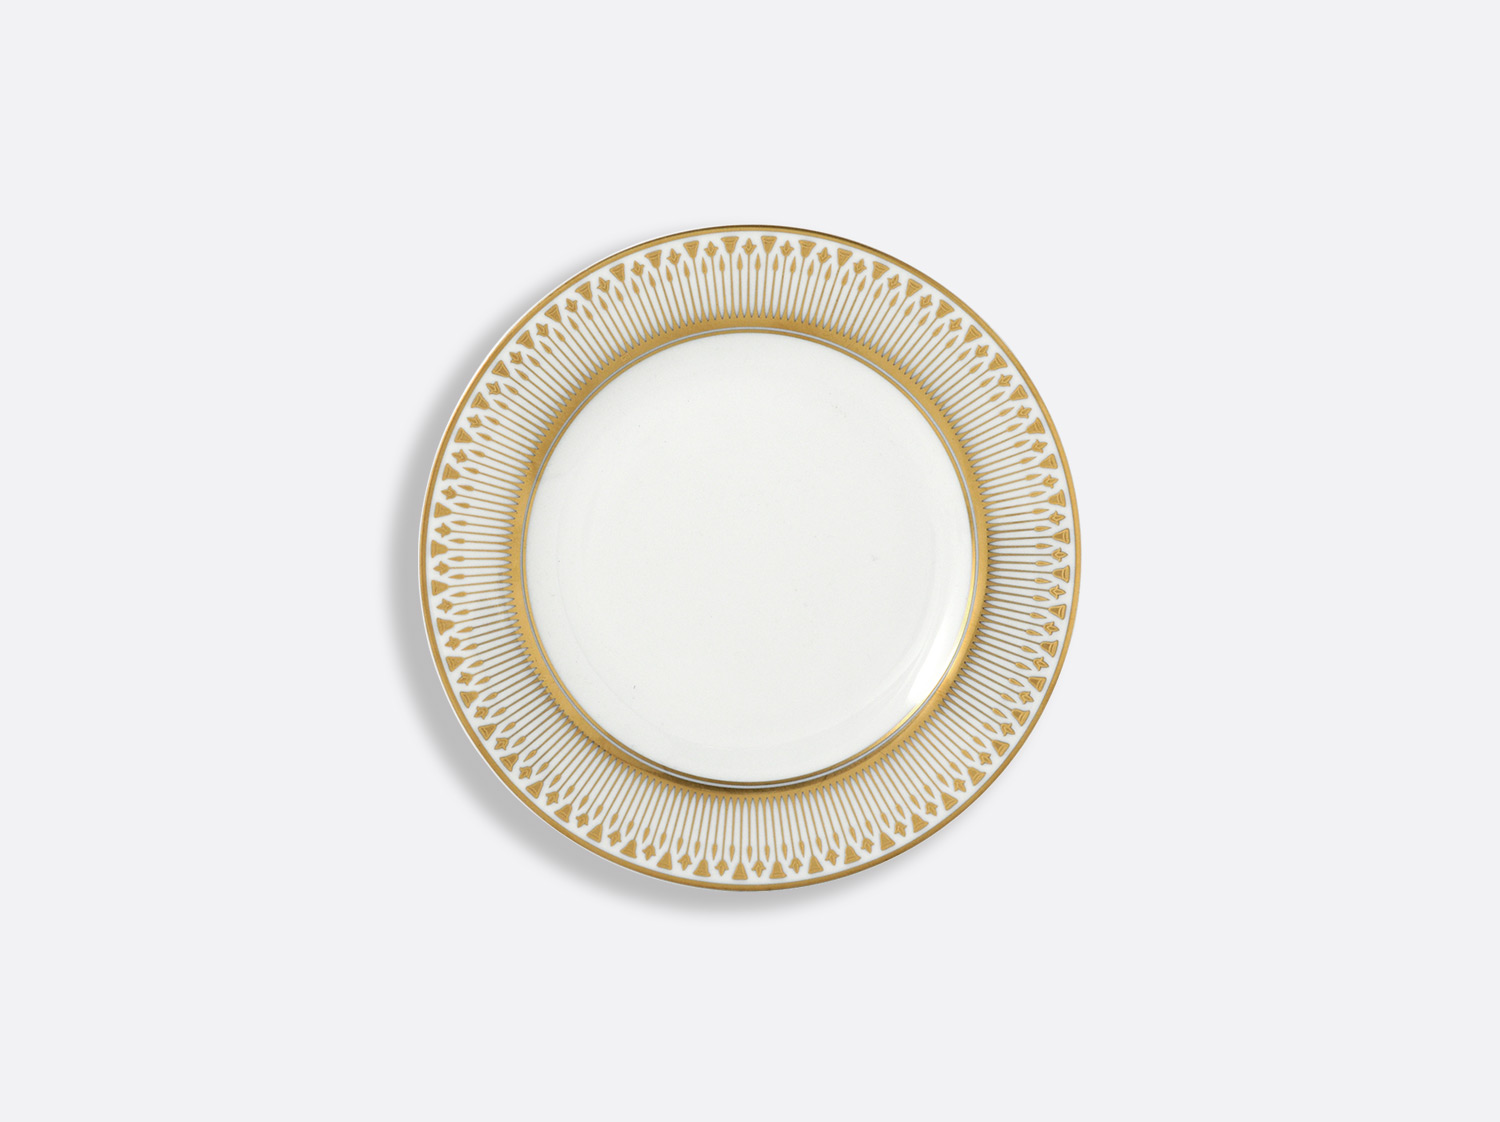 """China Bread and butter plate 6.3"""" of the collection Soleil levant 